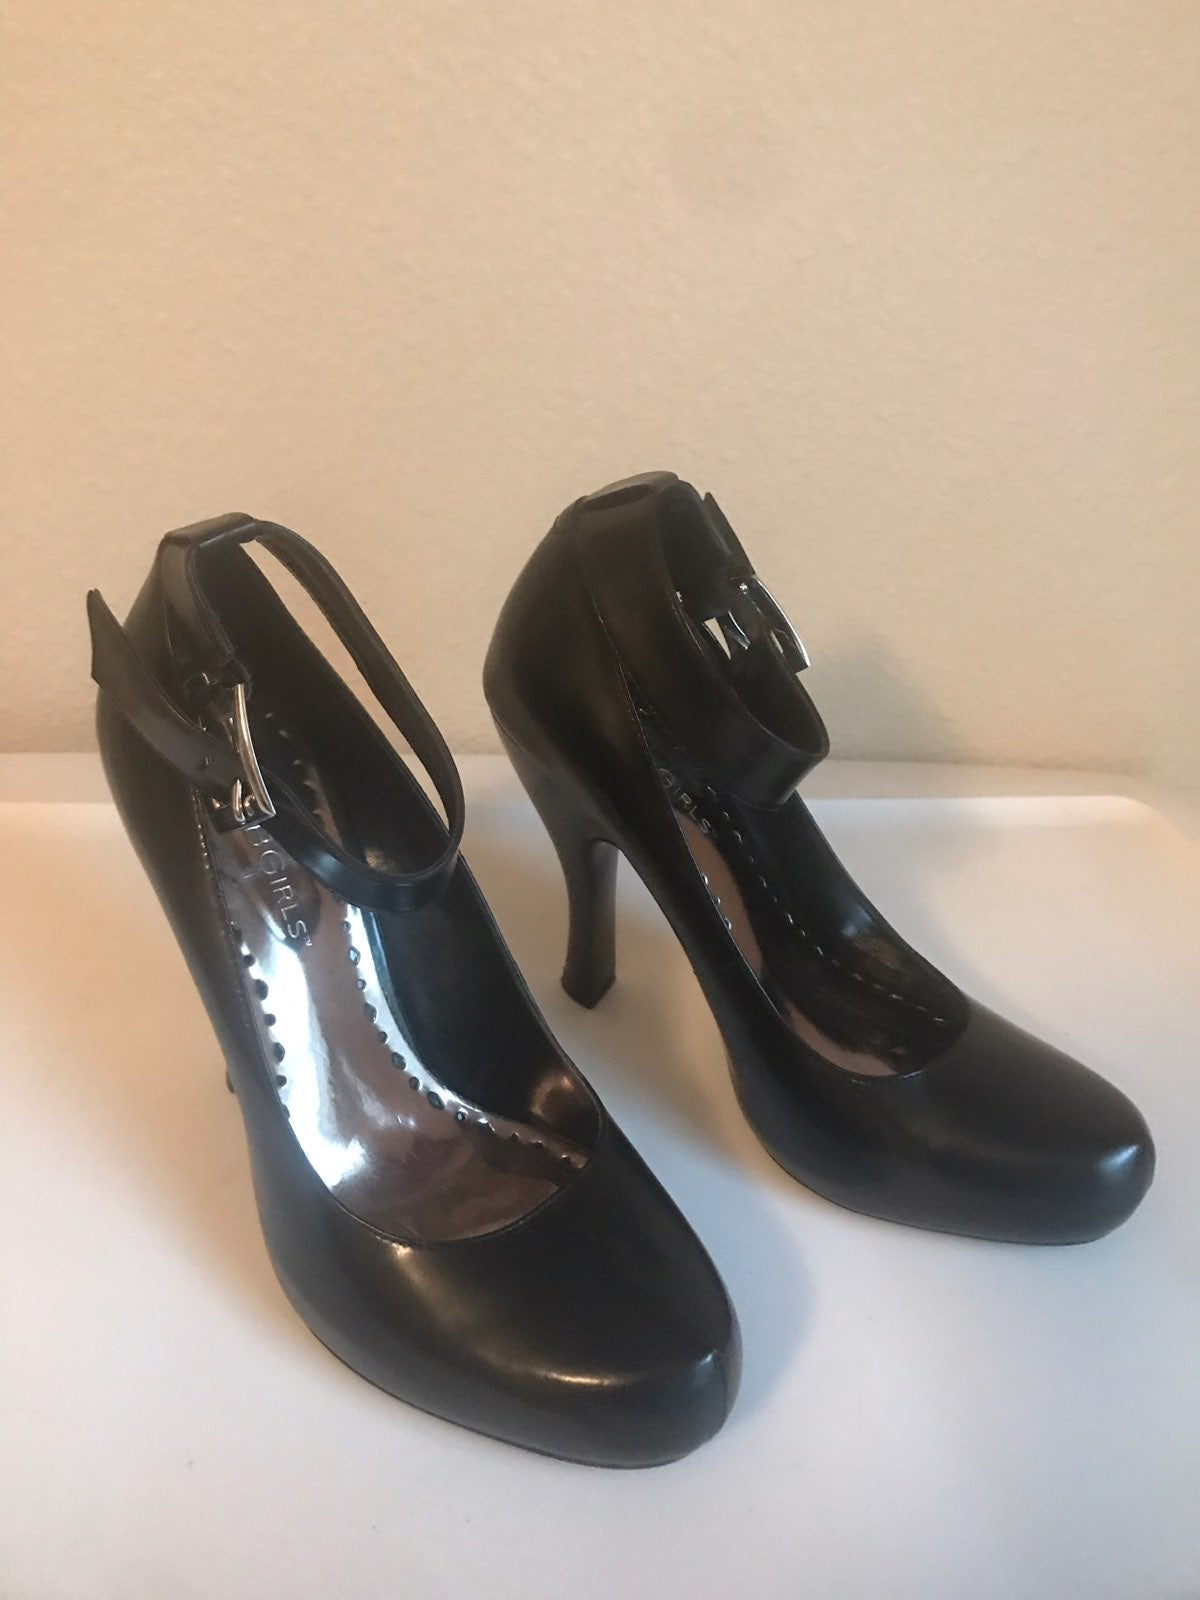 black bcb girls heels sz 5 1/2